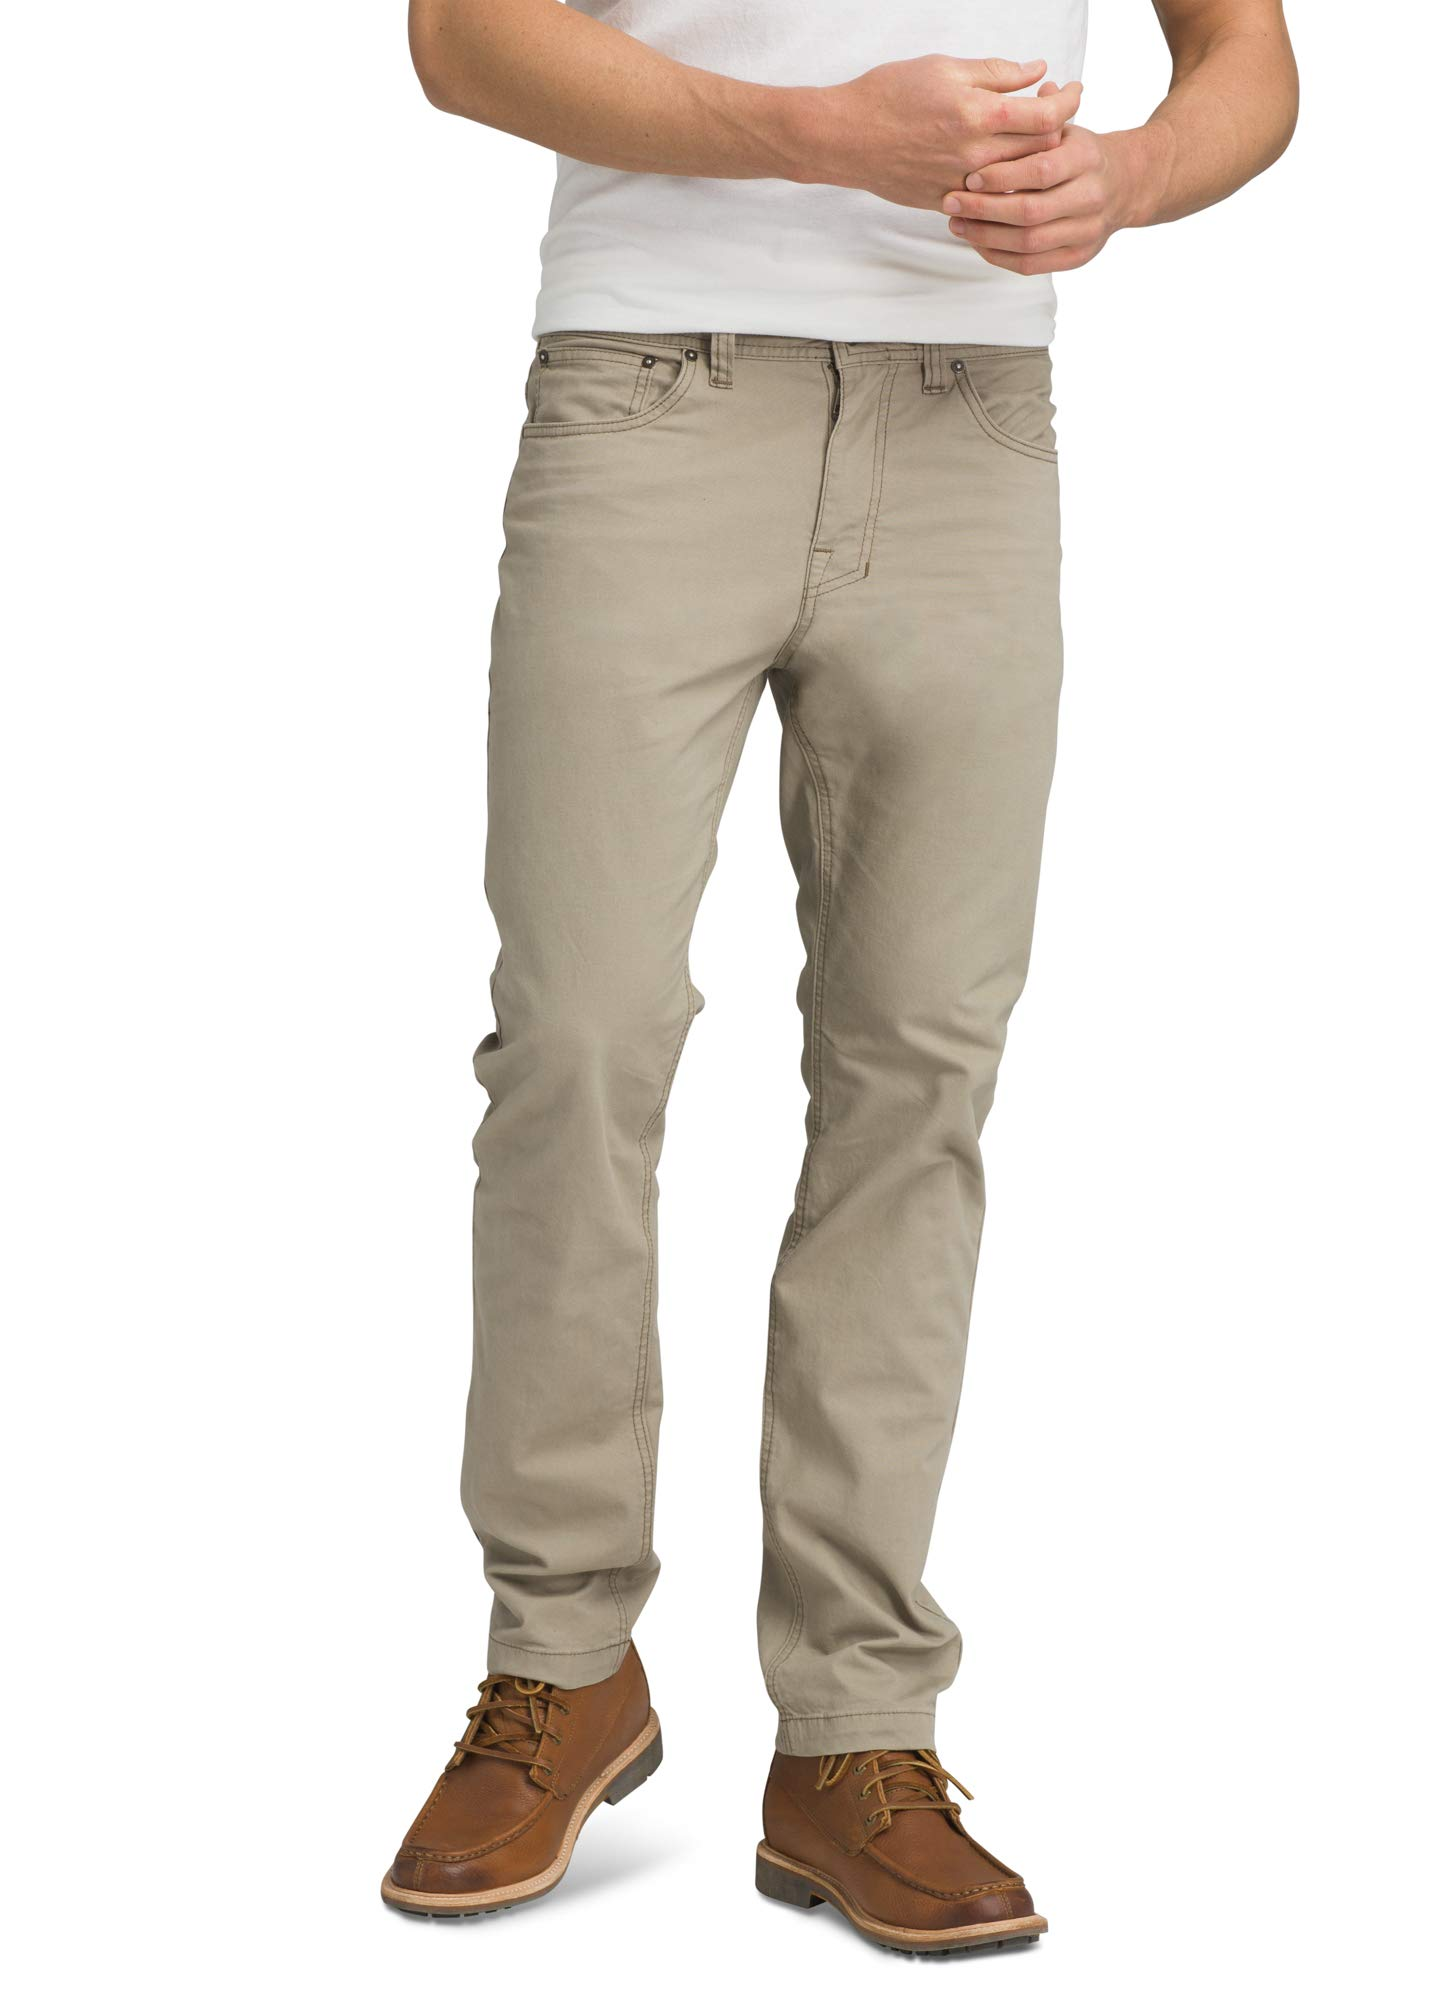 prAna - Men's Brion Lightweight, Breathable, Wrinkle-Resistant Stretch Pants for Hiking and Everyday Wear, 30'' Inseam, Dark Khaki, 33 by prAna